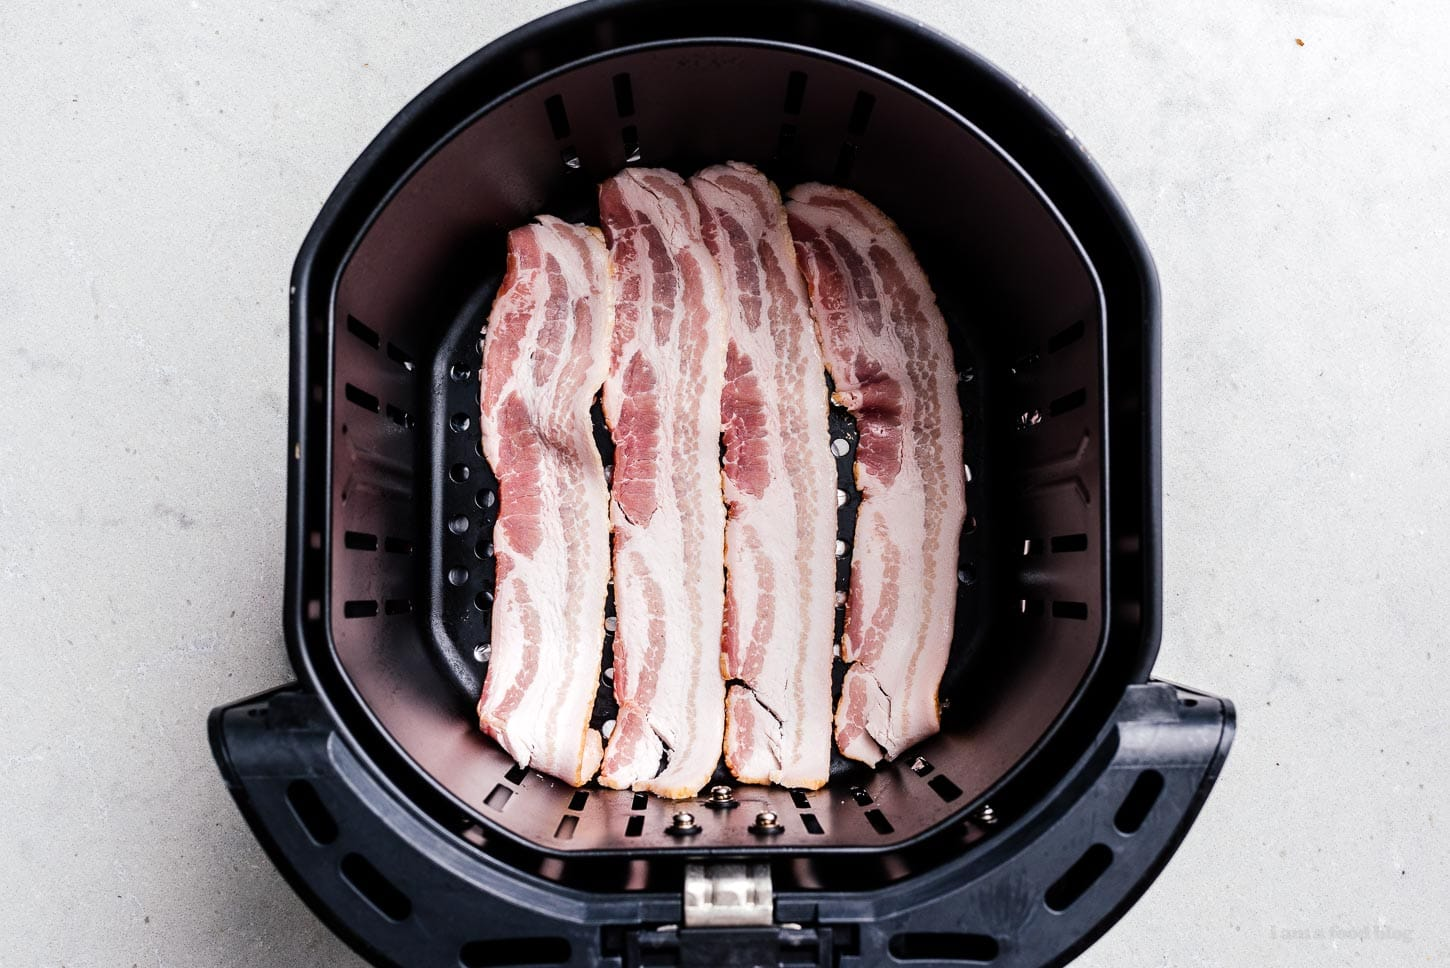 bacon in an air fryer basket | www.iamafoodblog.com